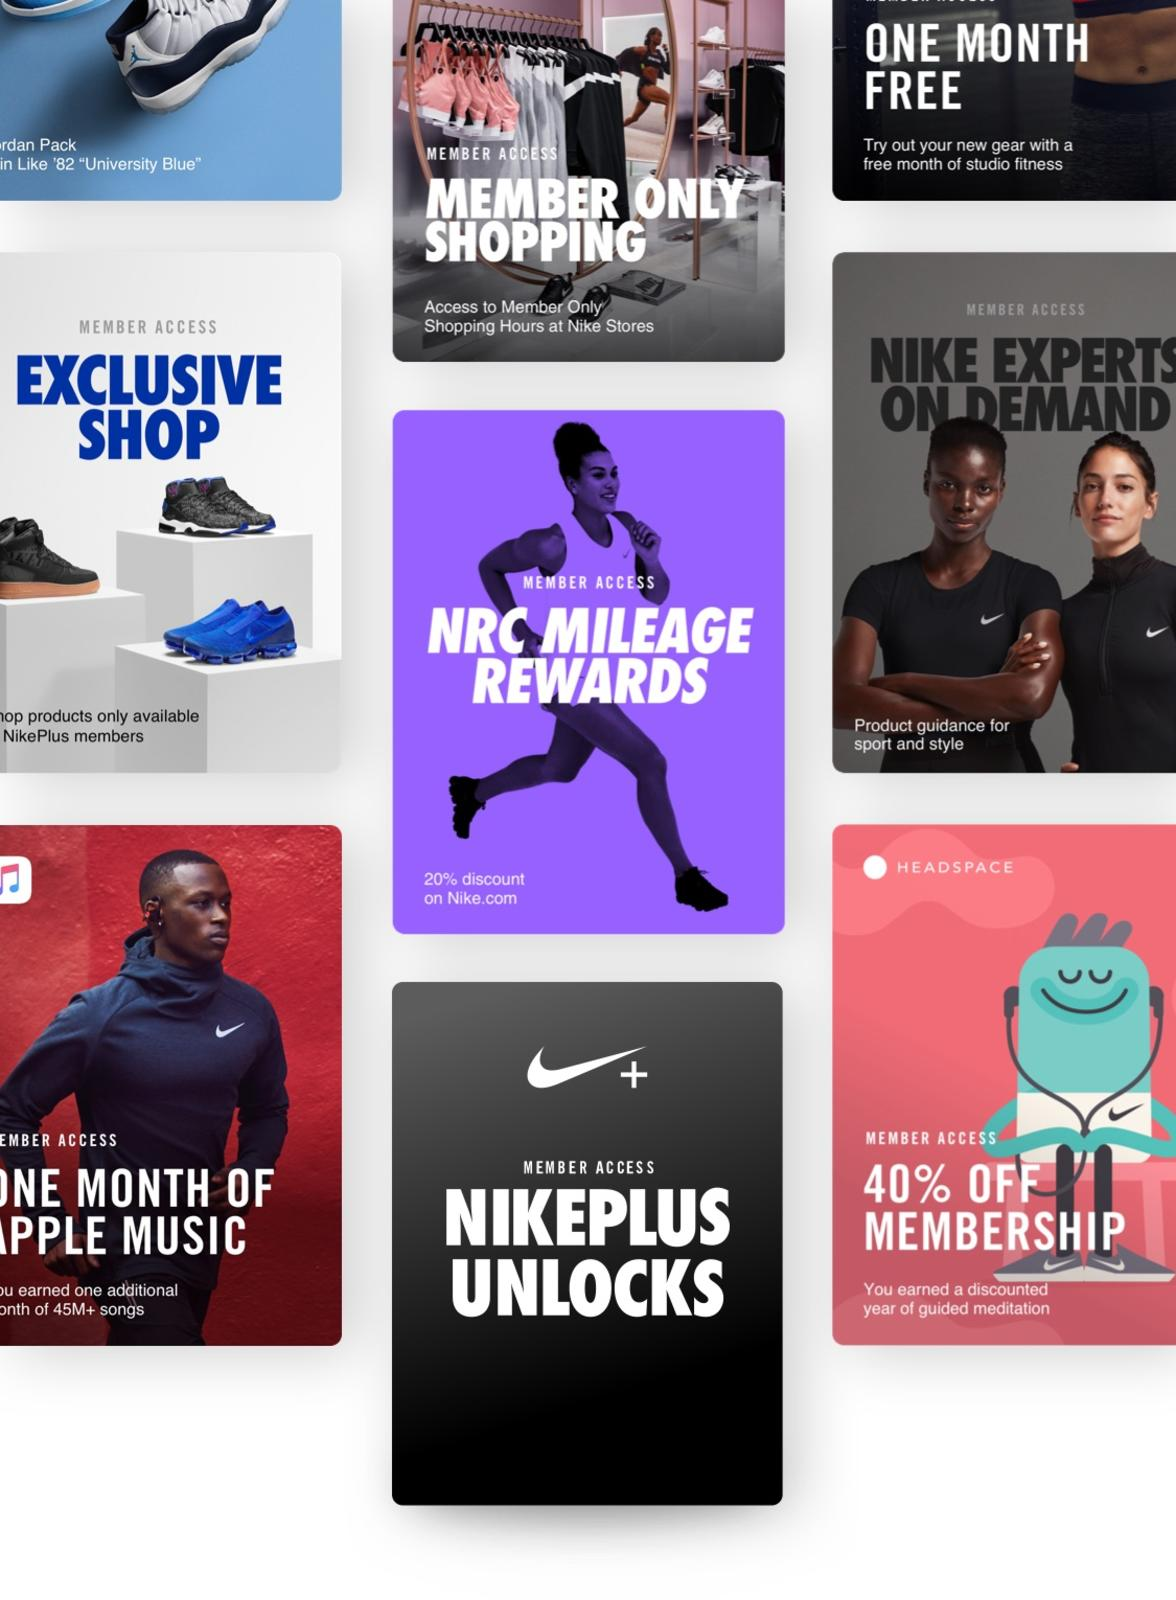 melodía Logro Comunismo  Nike rolls out a new set of benefits and perks for 'NikePlus' members —  Lindsey Gamble